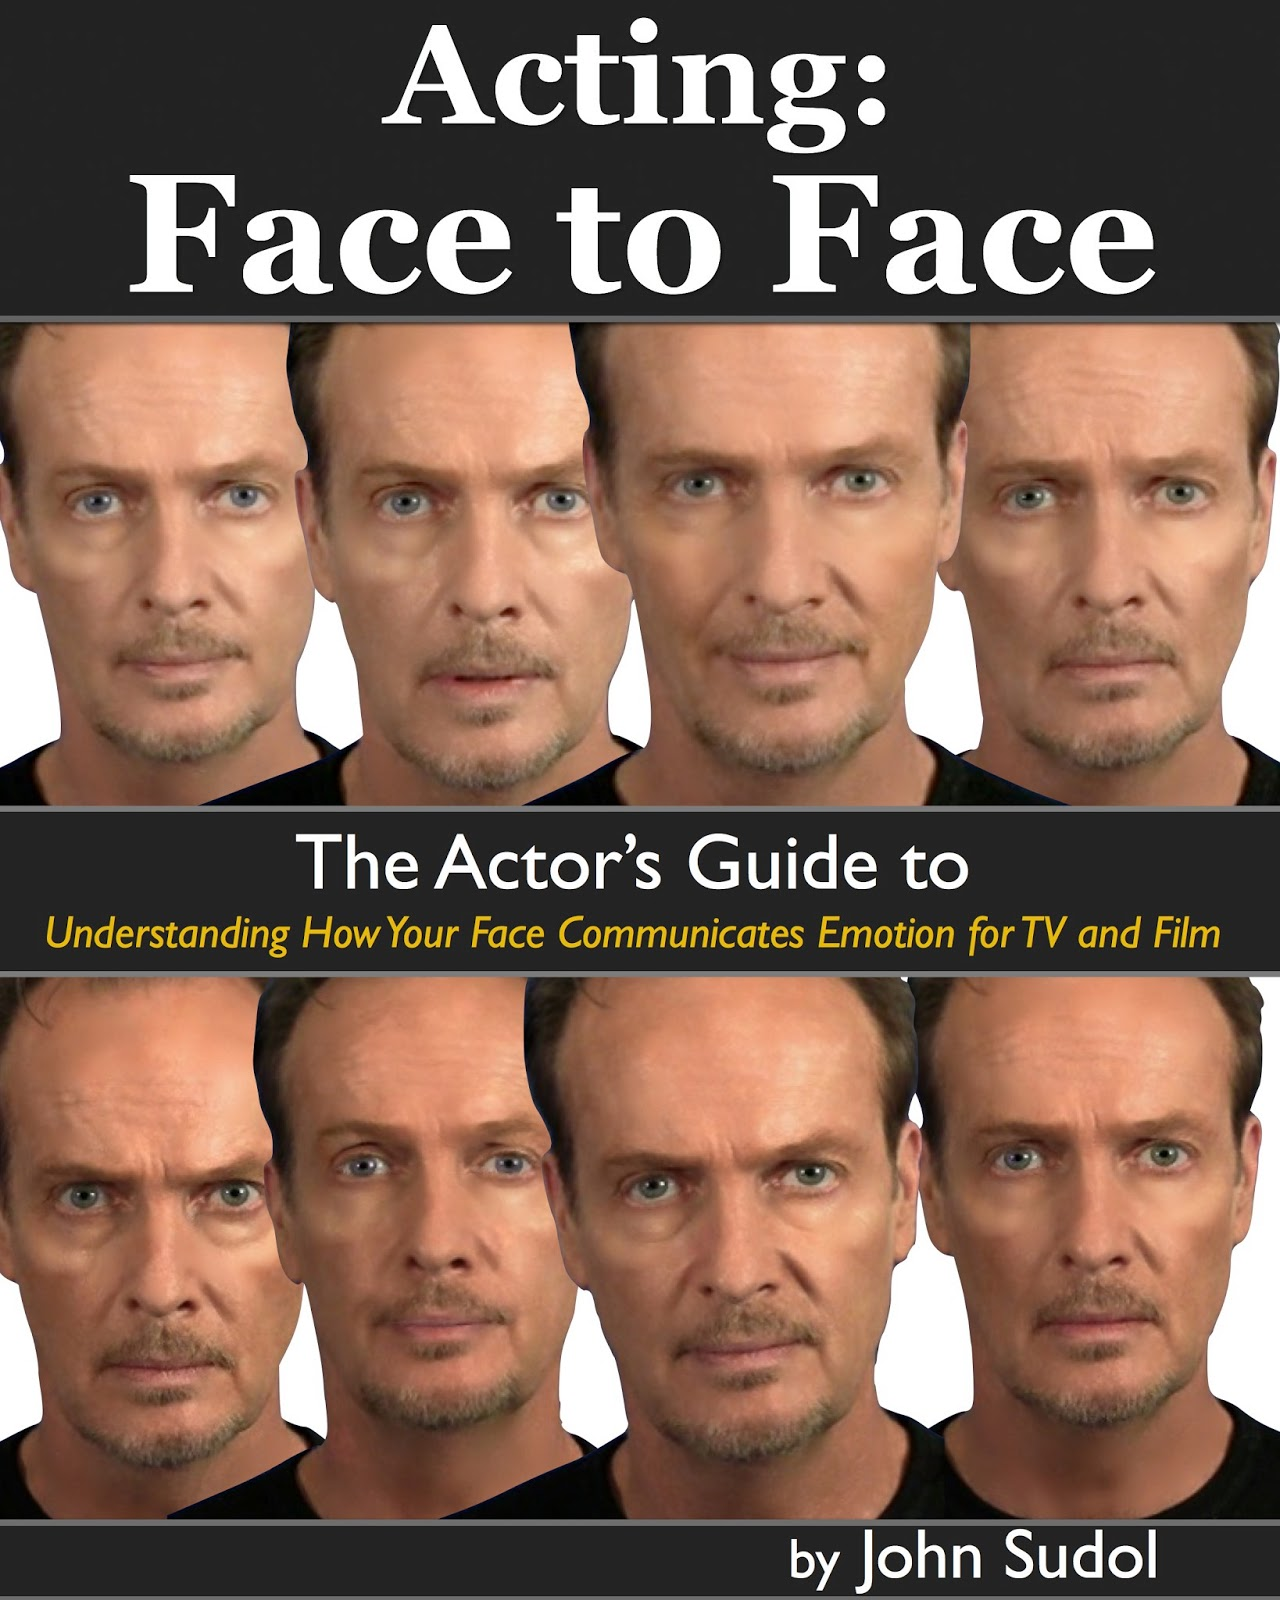 How to change the face